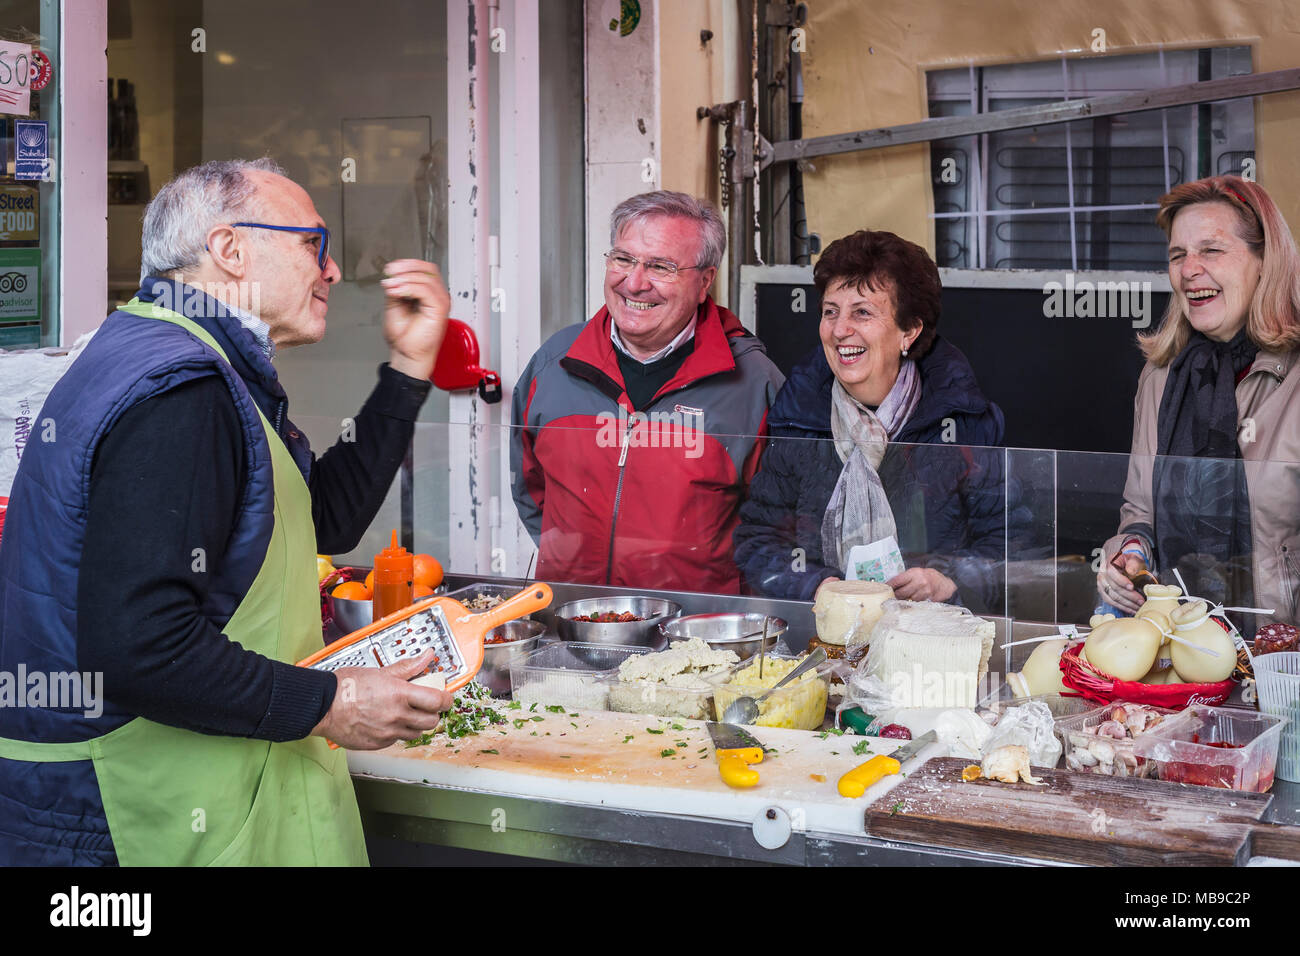 Seller of sandwiches with local products to the market of Ortigia, Siracusa, Sicily, Italy. - Stock Image